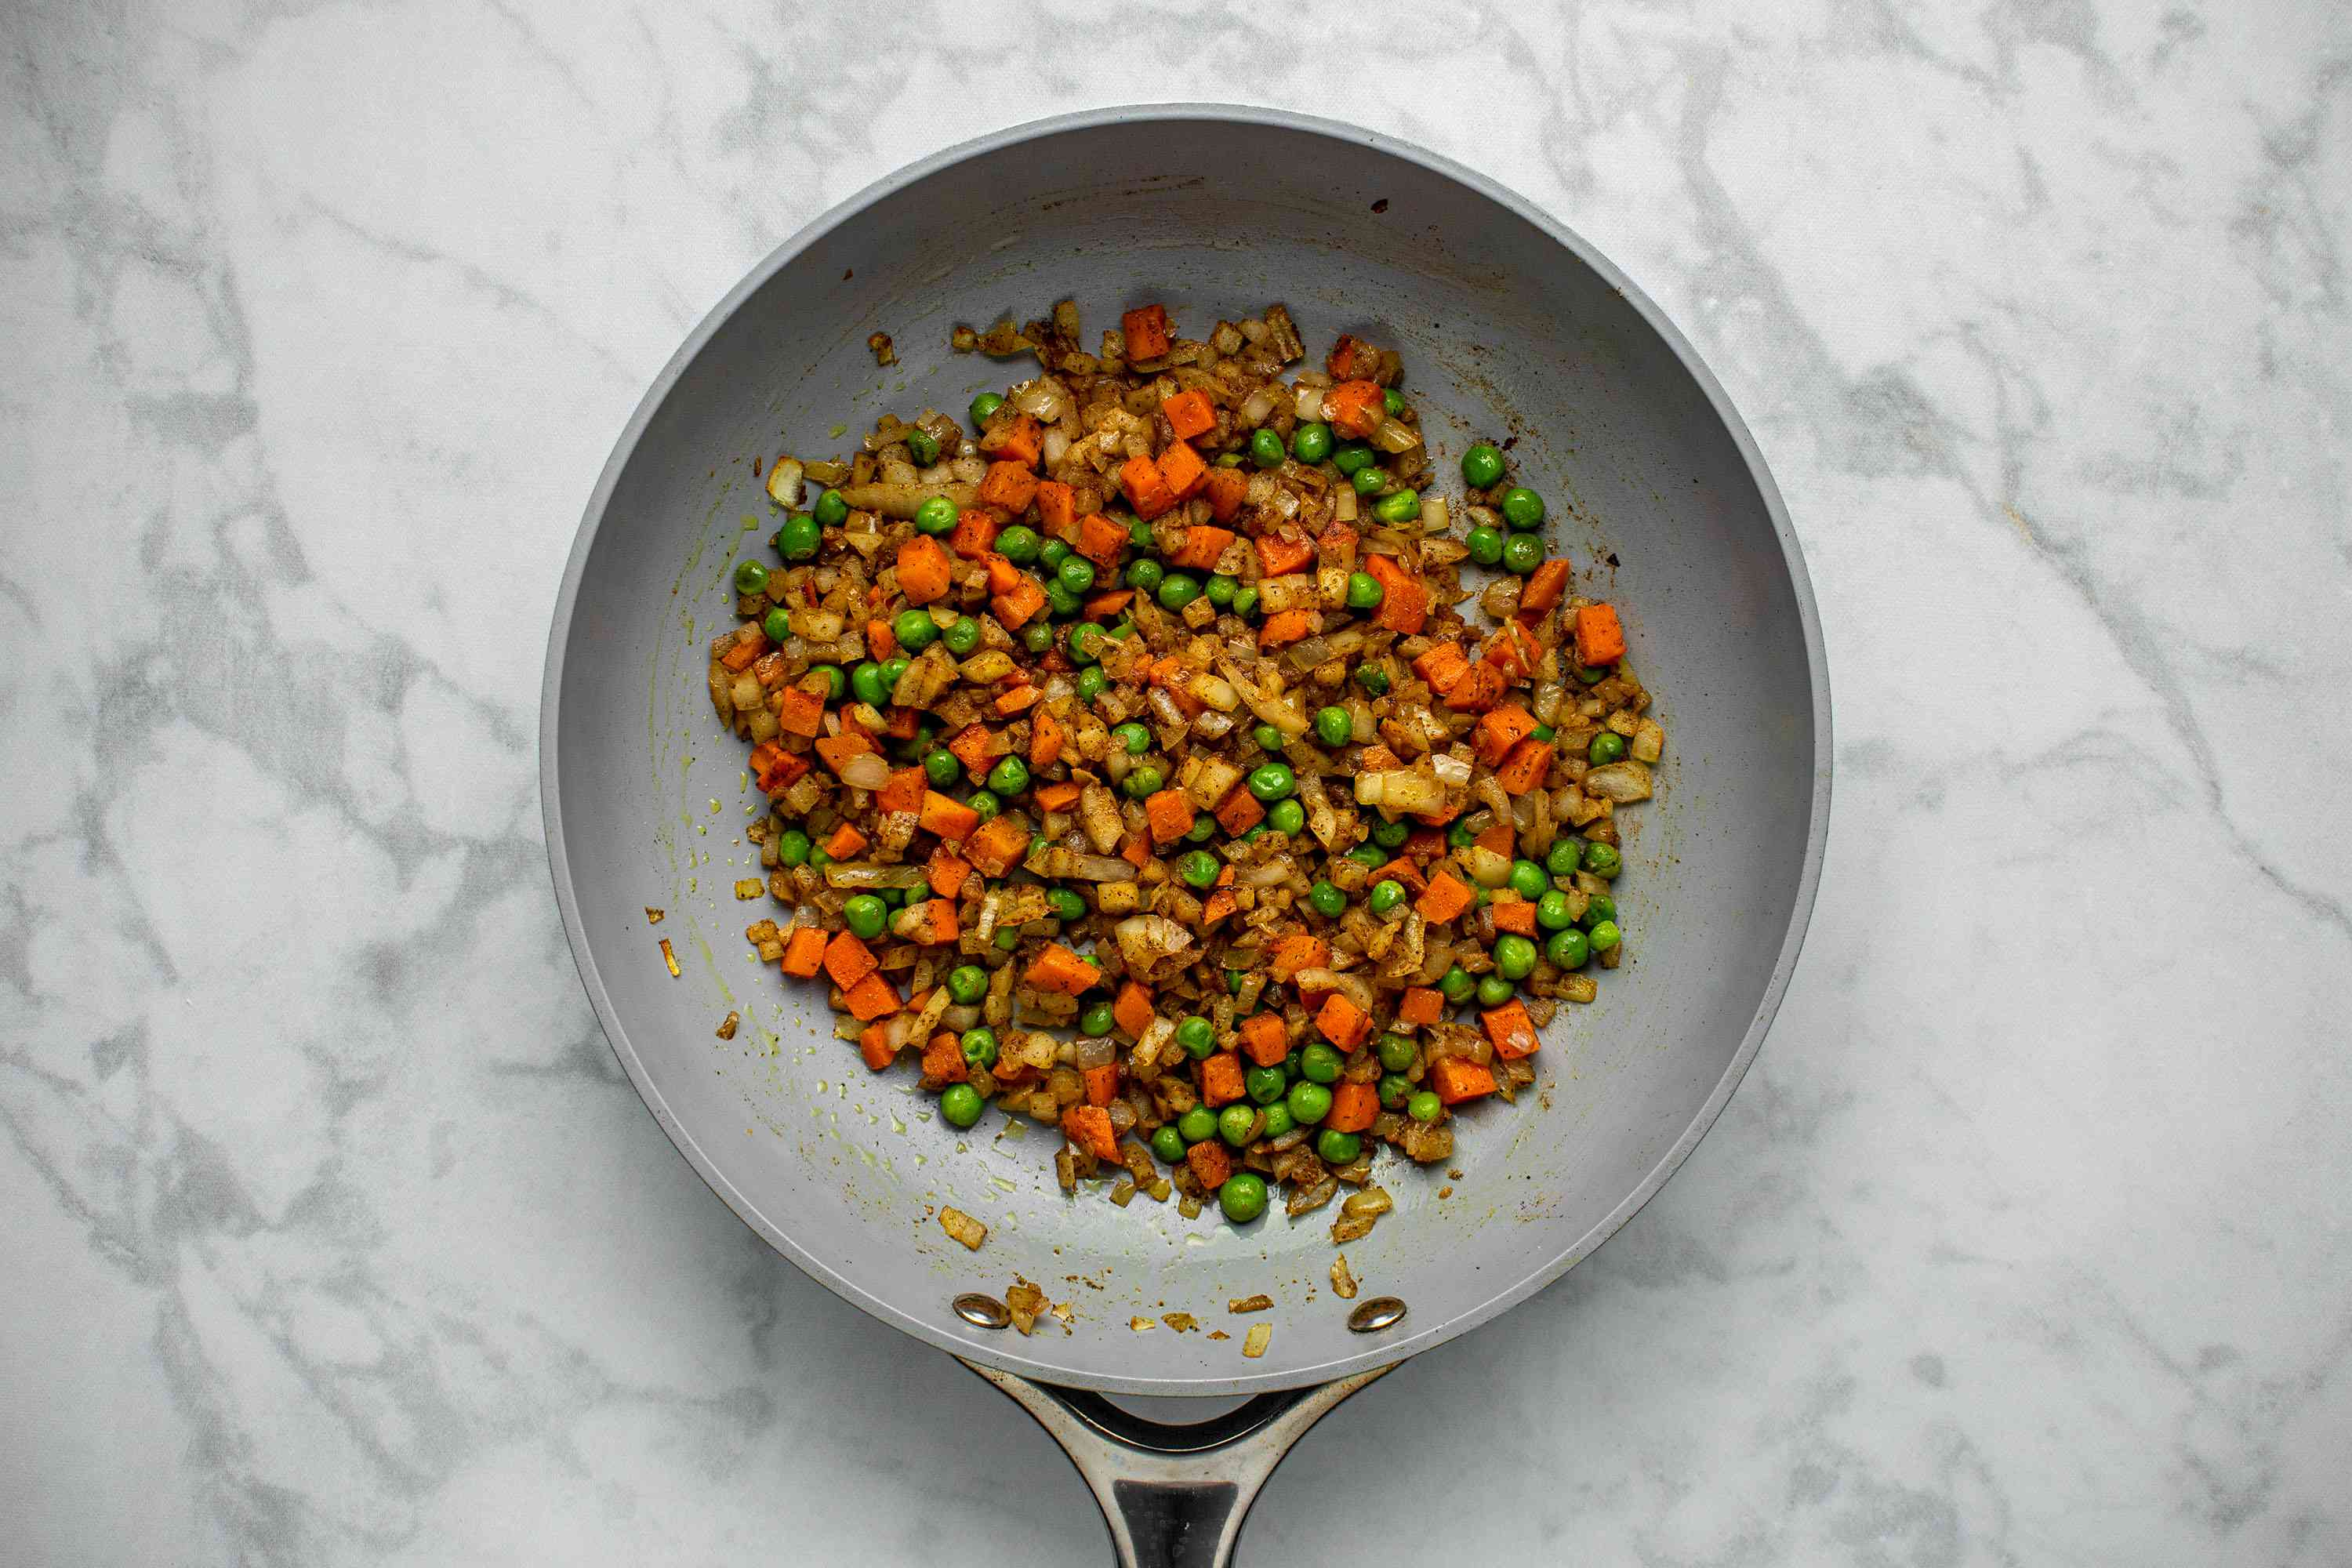 Add the peas and carrots, garam masala, and curry powder to the onions in the skillet